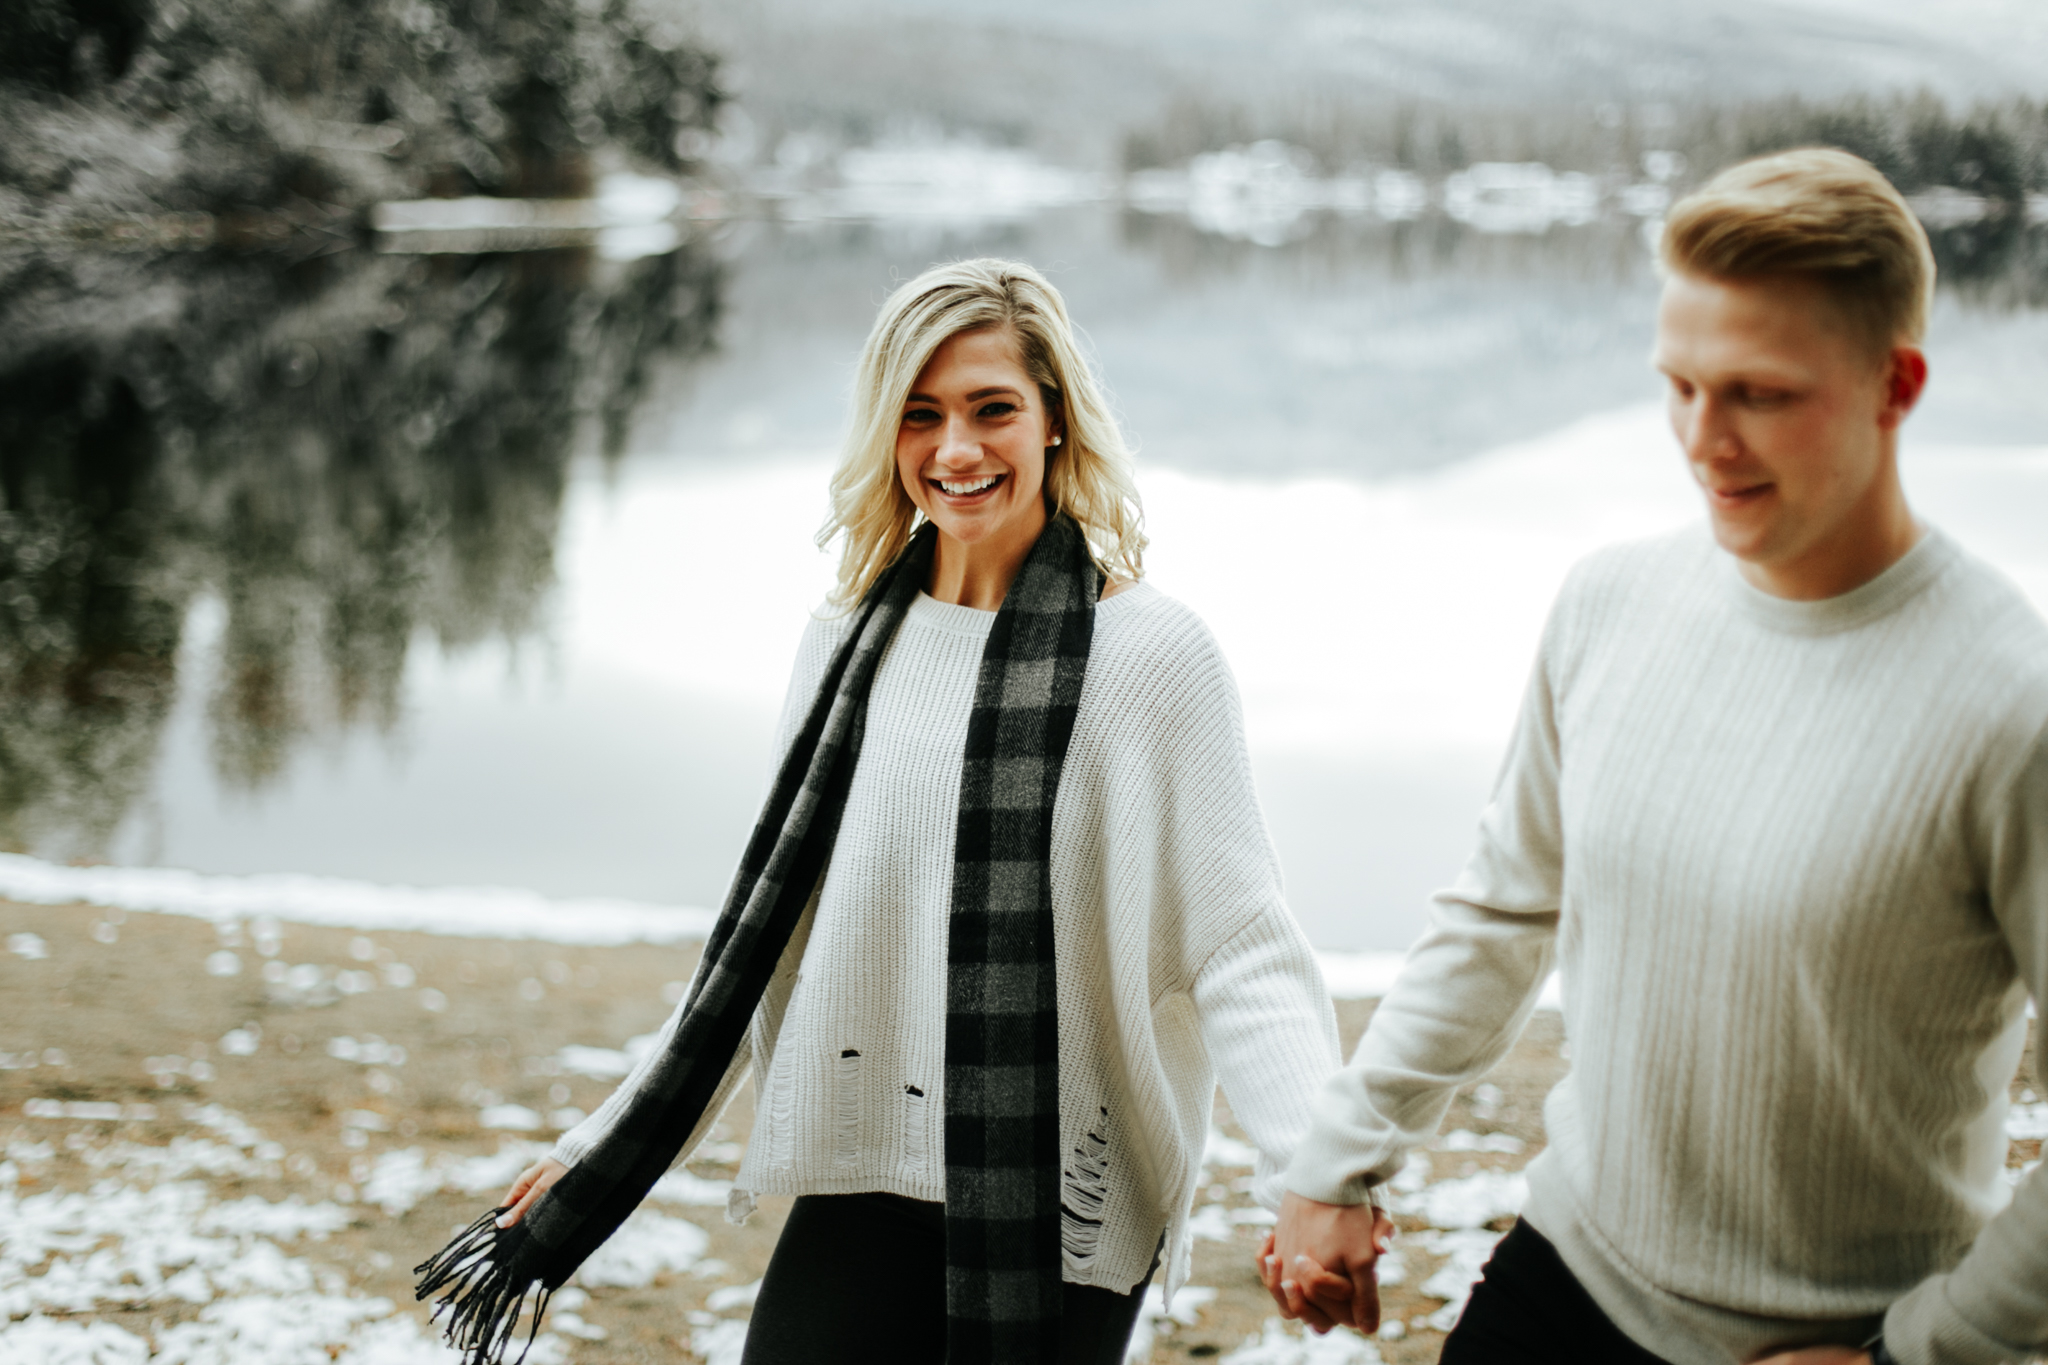 love-and-be-loved-photography-mountain-engagement-ashlyn-rob-perfect-fit-4-u-photo-image-picture-38.jpg